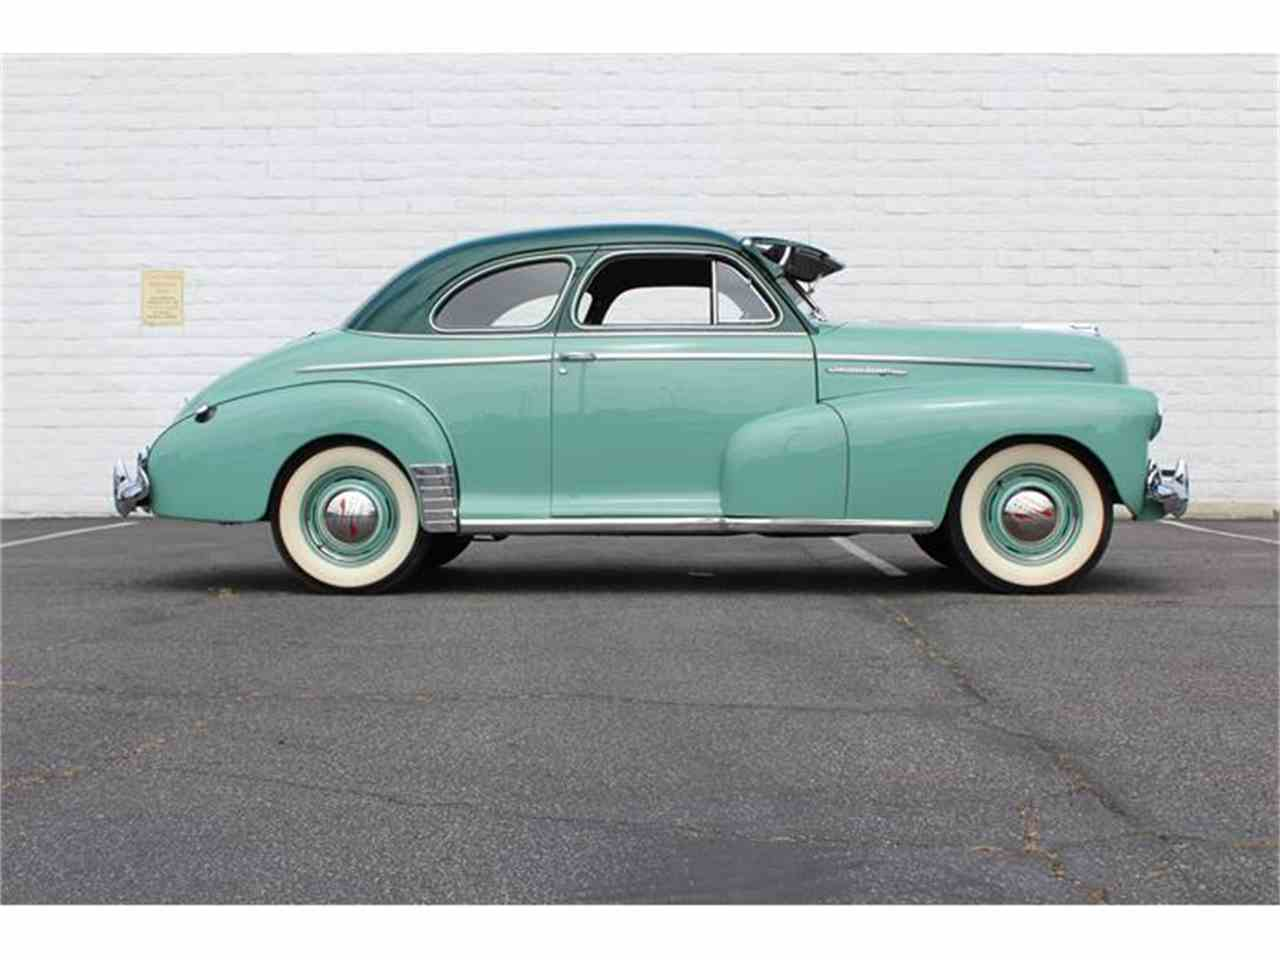 Large Picture of Classic '42 Special Deluxe located in California - $43,500.00 - IZ3I